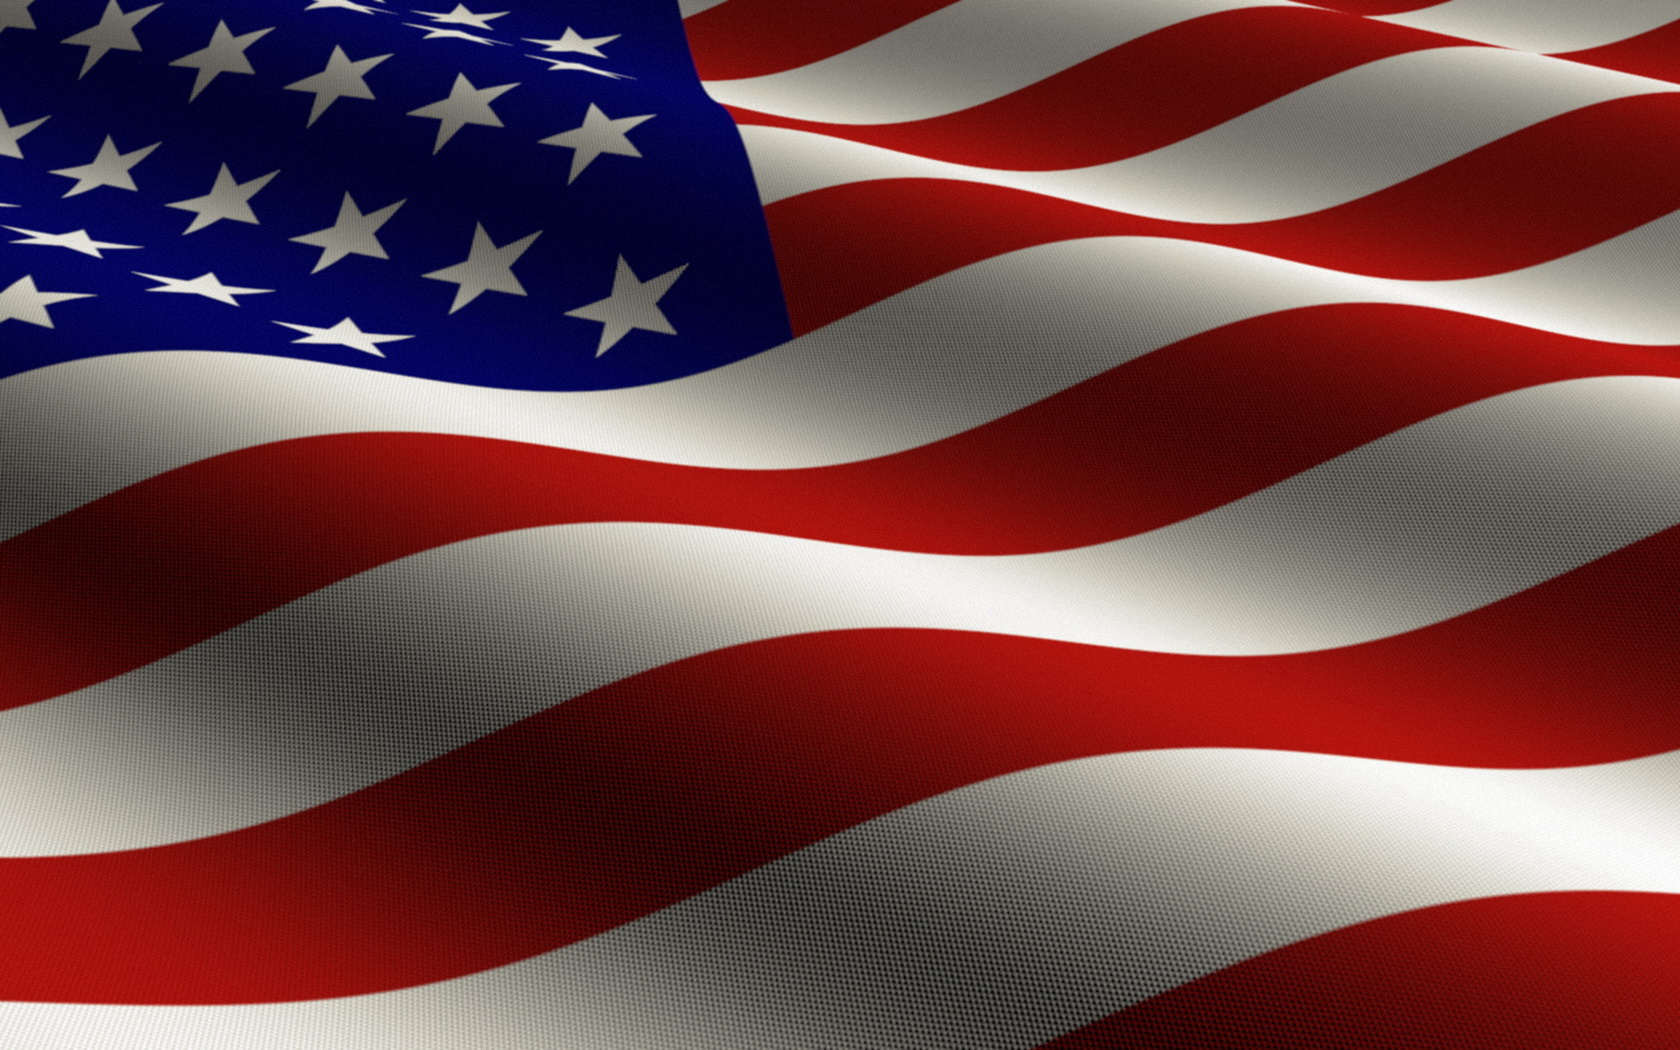 Black American Flag Wallpaper Iphone Usa american flag wallpaper